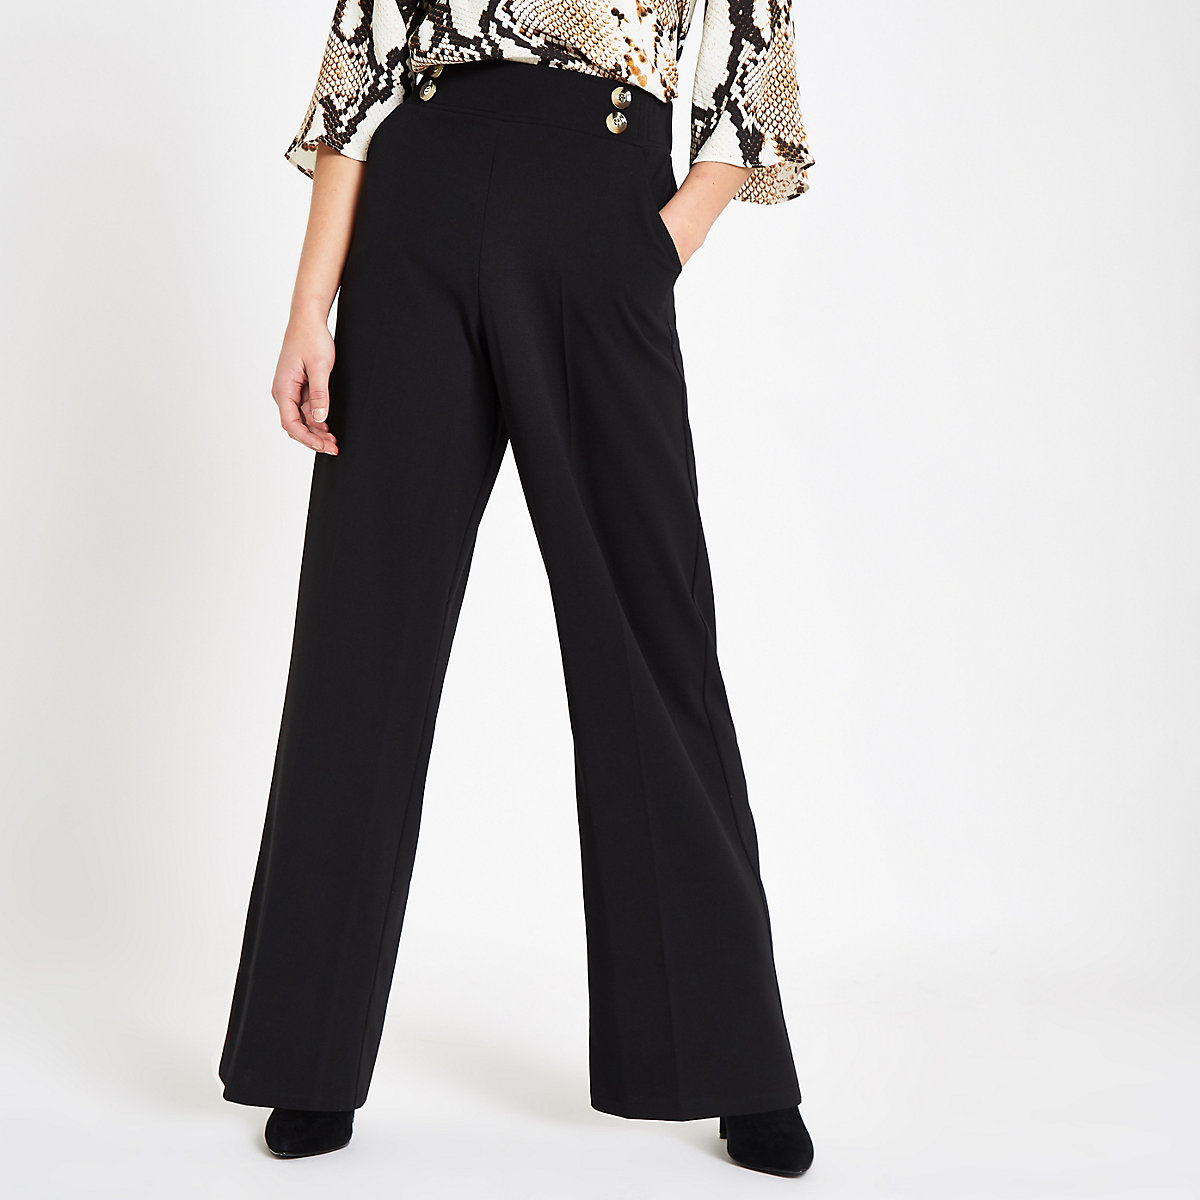 Petite black button detail wide leg trousers